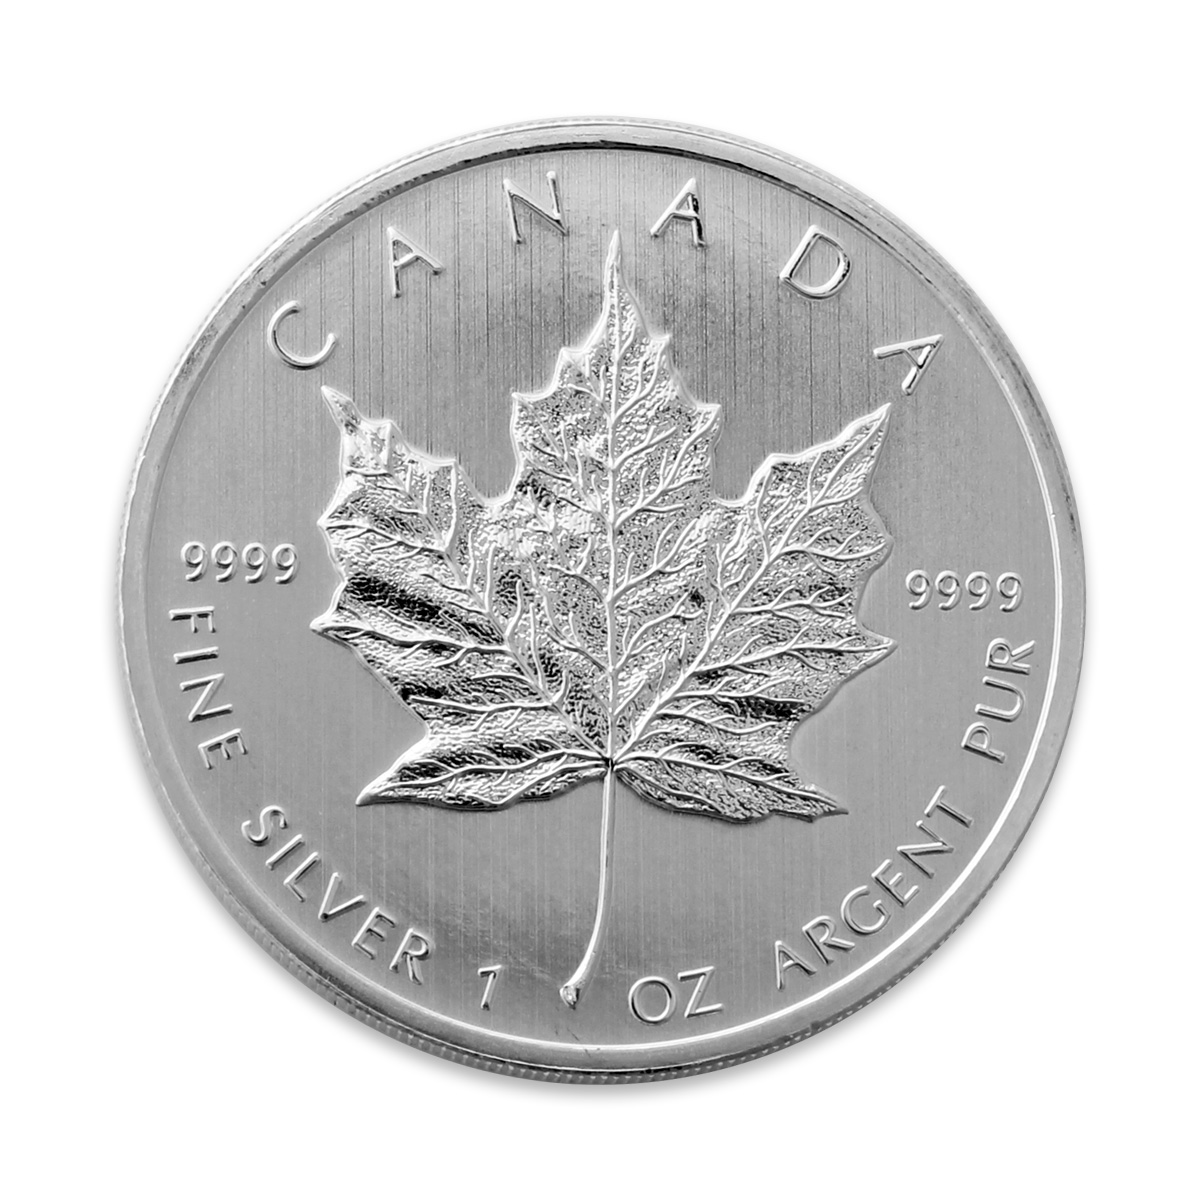 Canadian Maple Leaf 1oz Silver Coin